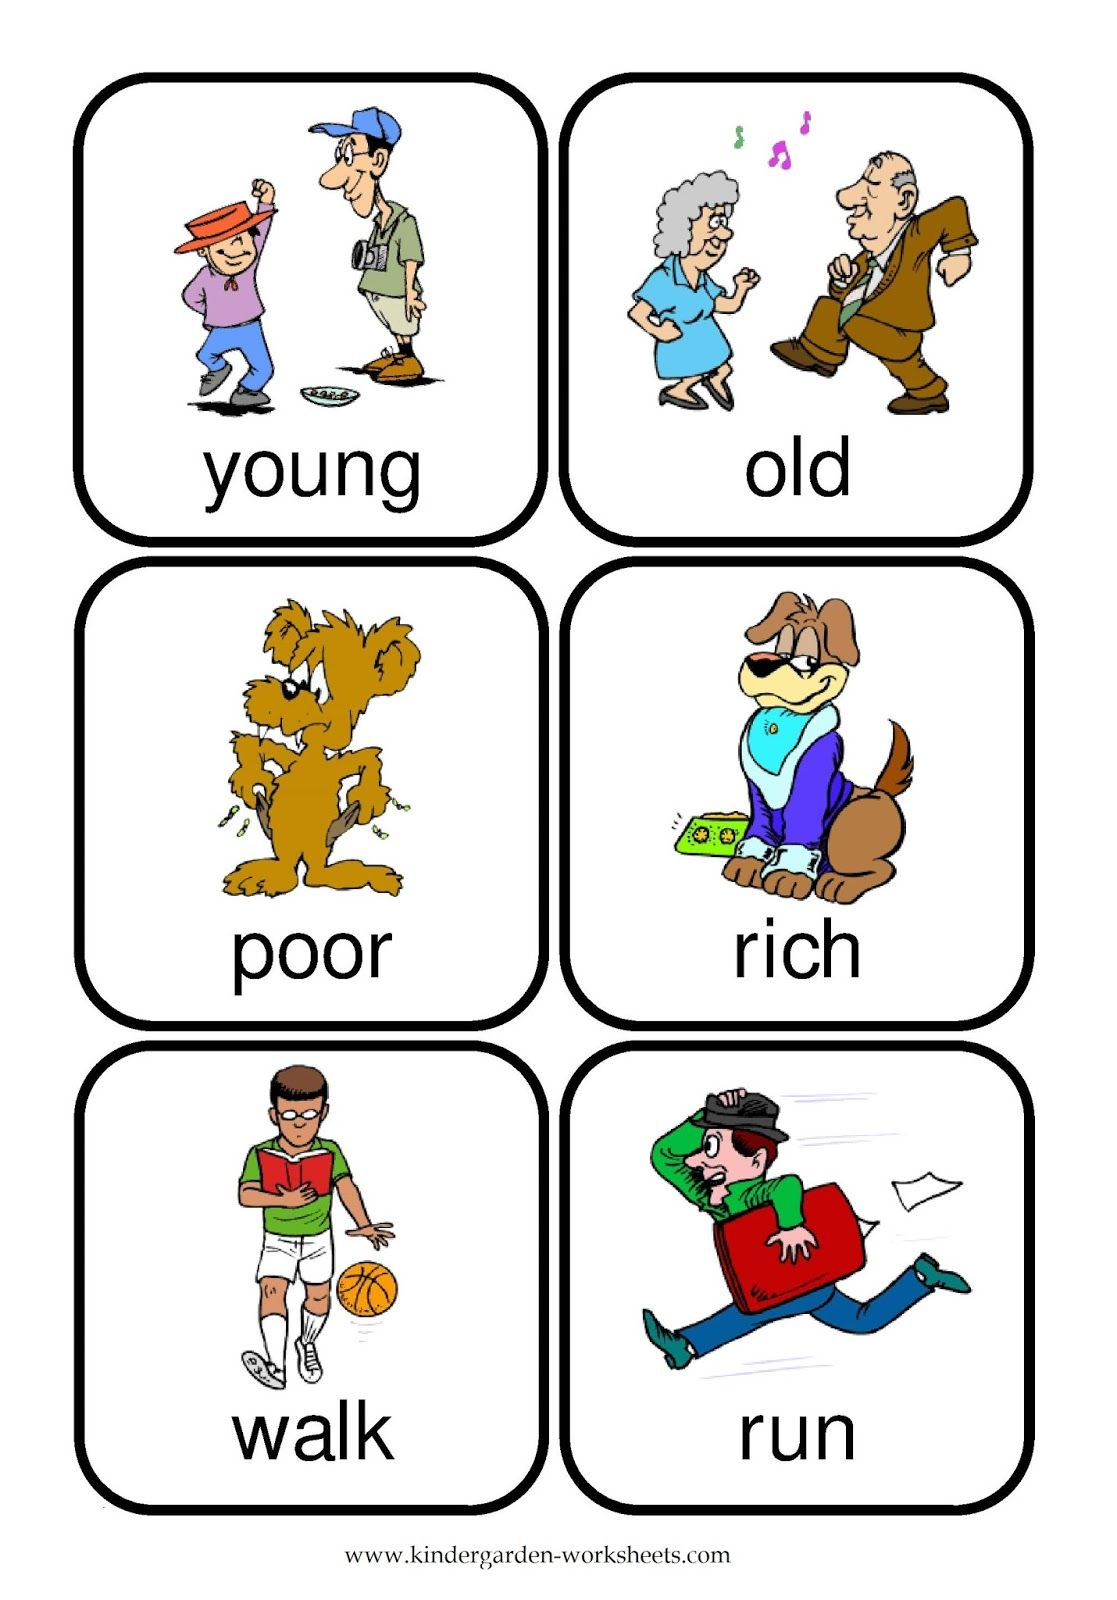 word preschoolers - Yahoo Image Search Results | daycare ...